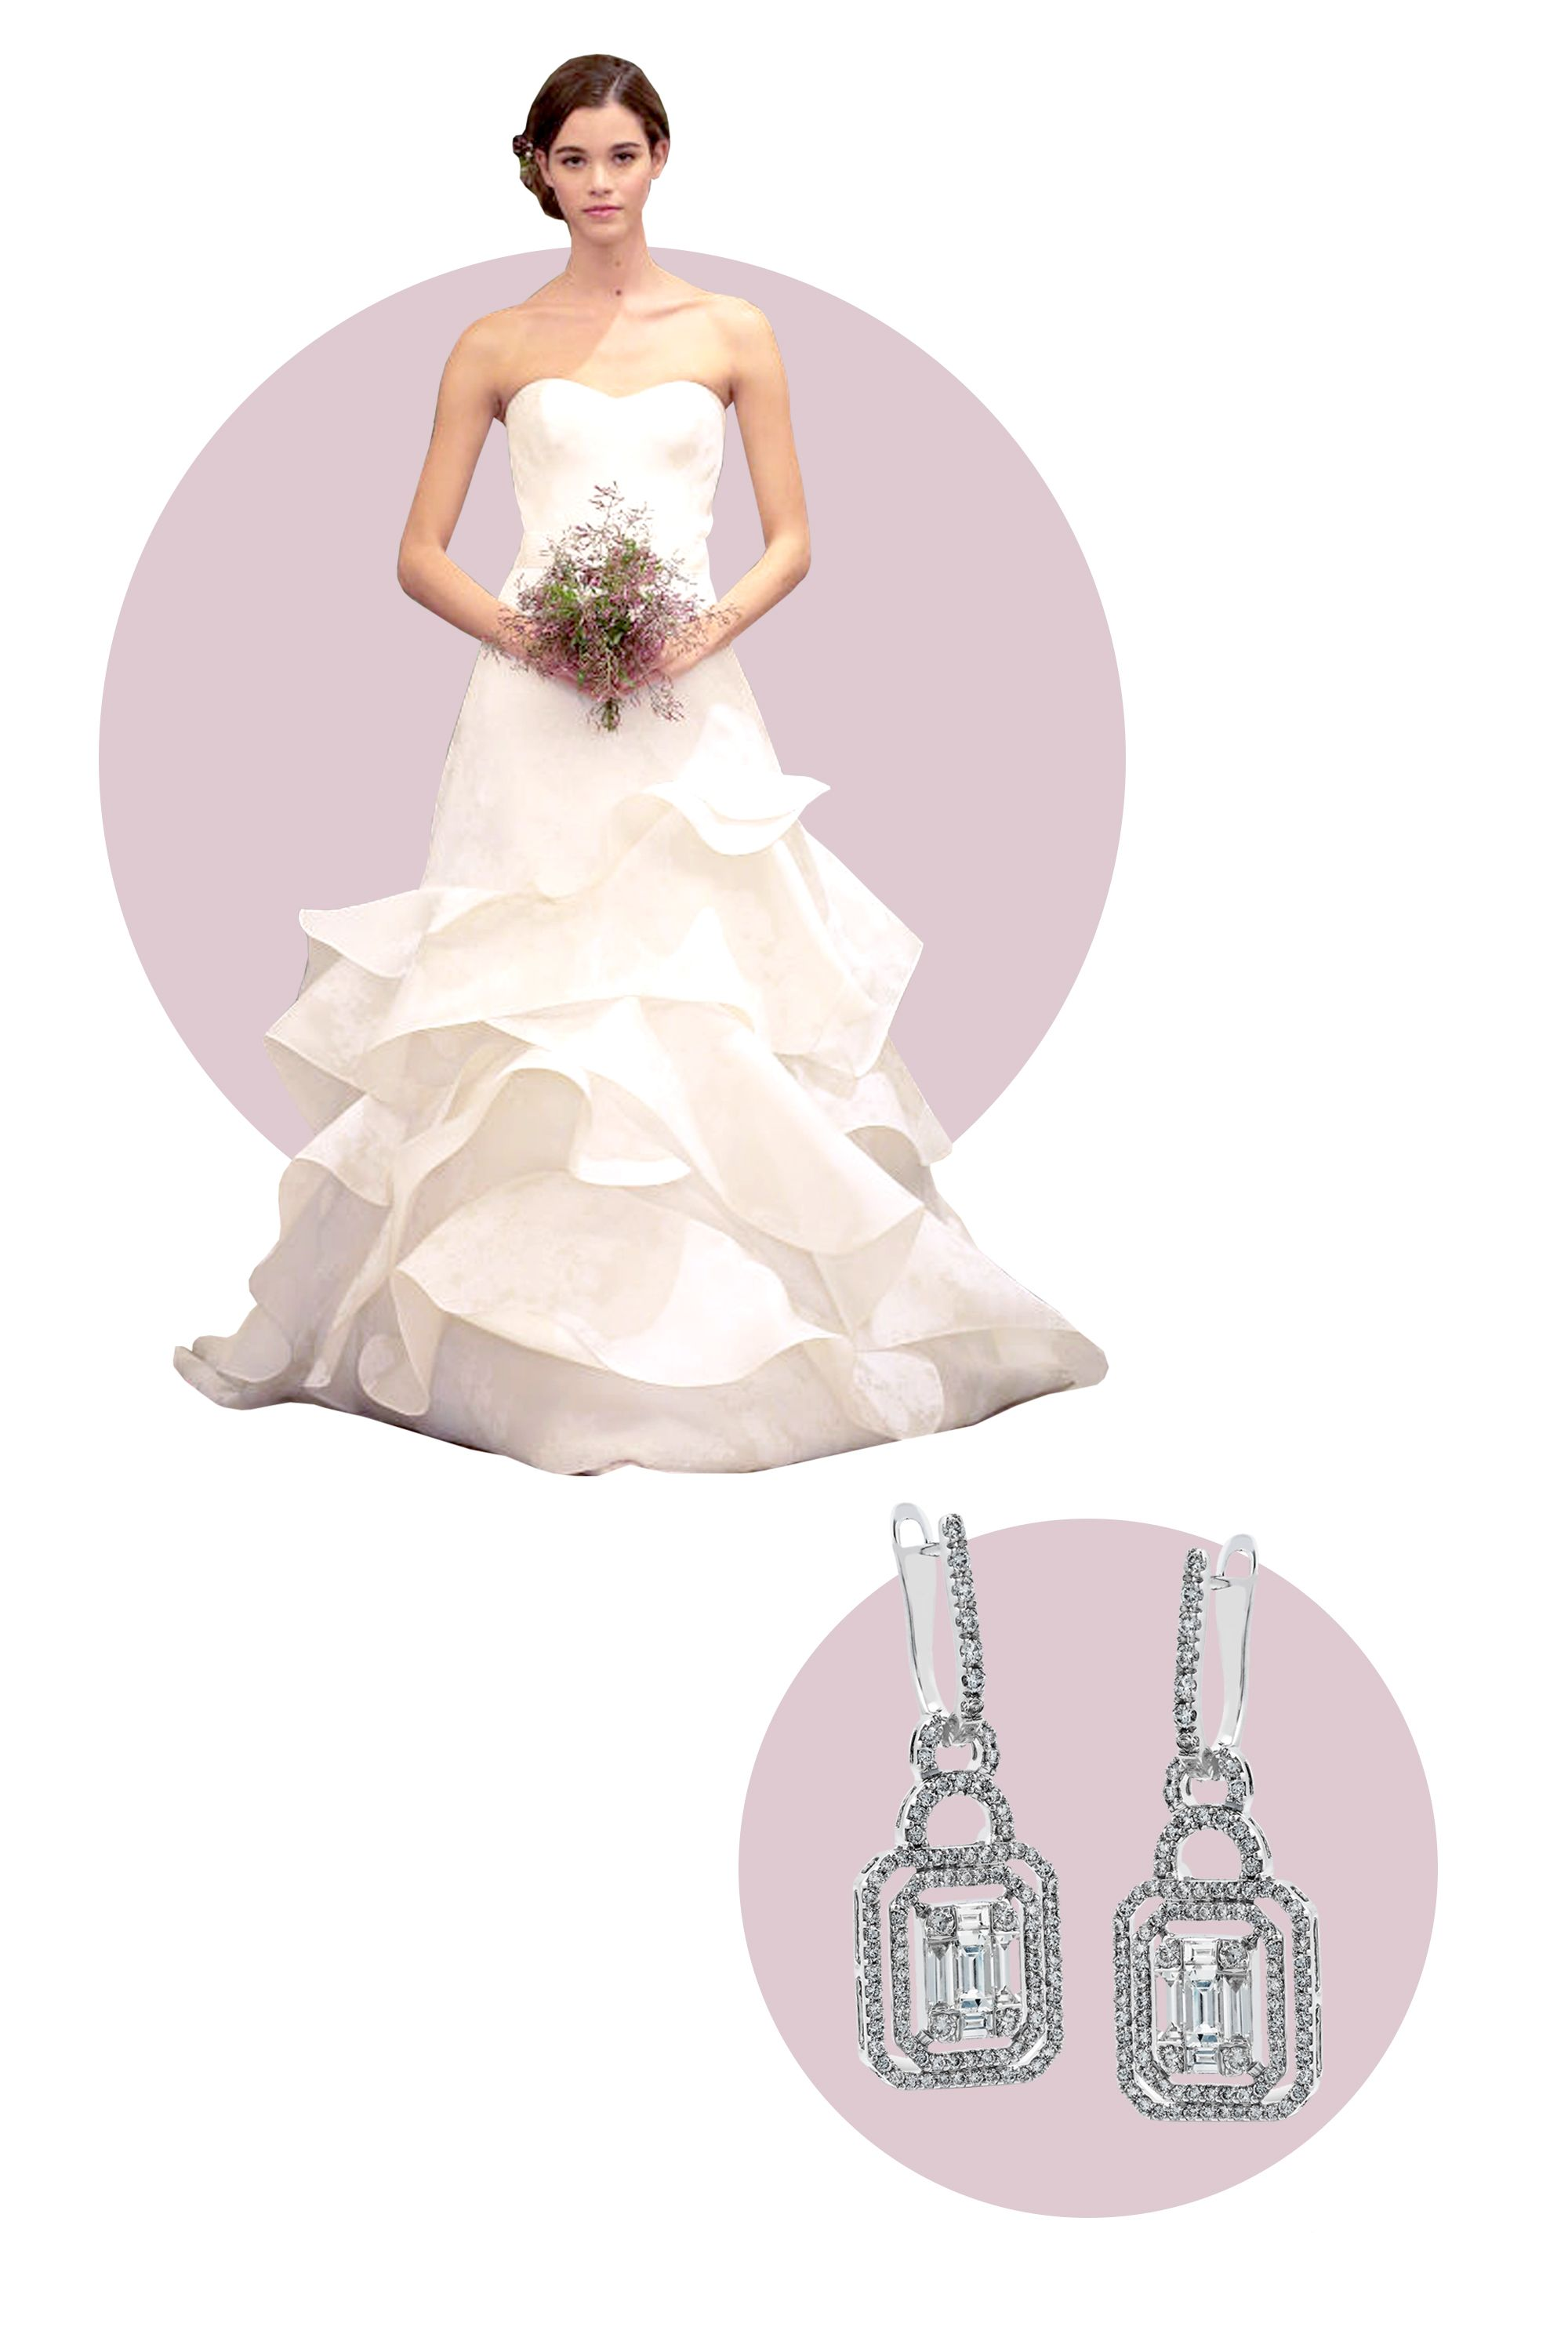 """<p>Embrace the glamorous side of yourself and pair your dramatic ruffle gown with an equally show-stopping pair of diamond drop earrings.</p> <p><em>Simon G. Mosaic Collection Earrings, $5,940; <a target=""""_blank"""" href=""""http://www.simongjewelry.com/product/lp4296-earring/"""">simongjewelry.com</a></em></p> <p><em>Dress, Carolina Herrera Spring 2016</em></p>"""